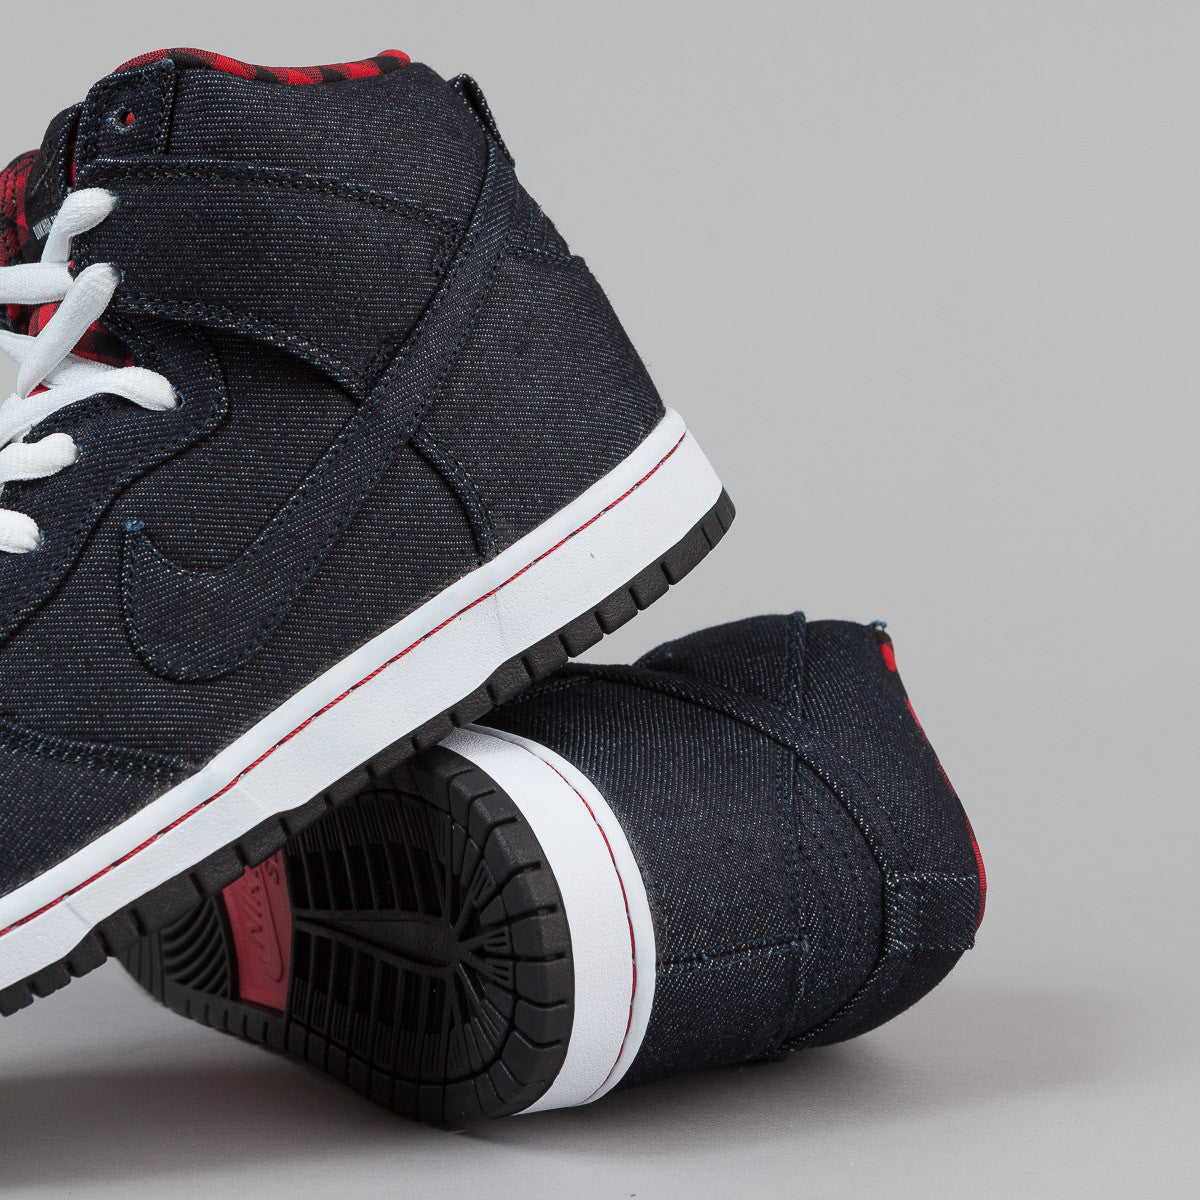 Nike SB Dunk High Premium Shoes - Dark Obsidian / Dark Obsidian - White